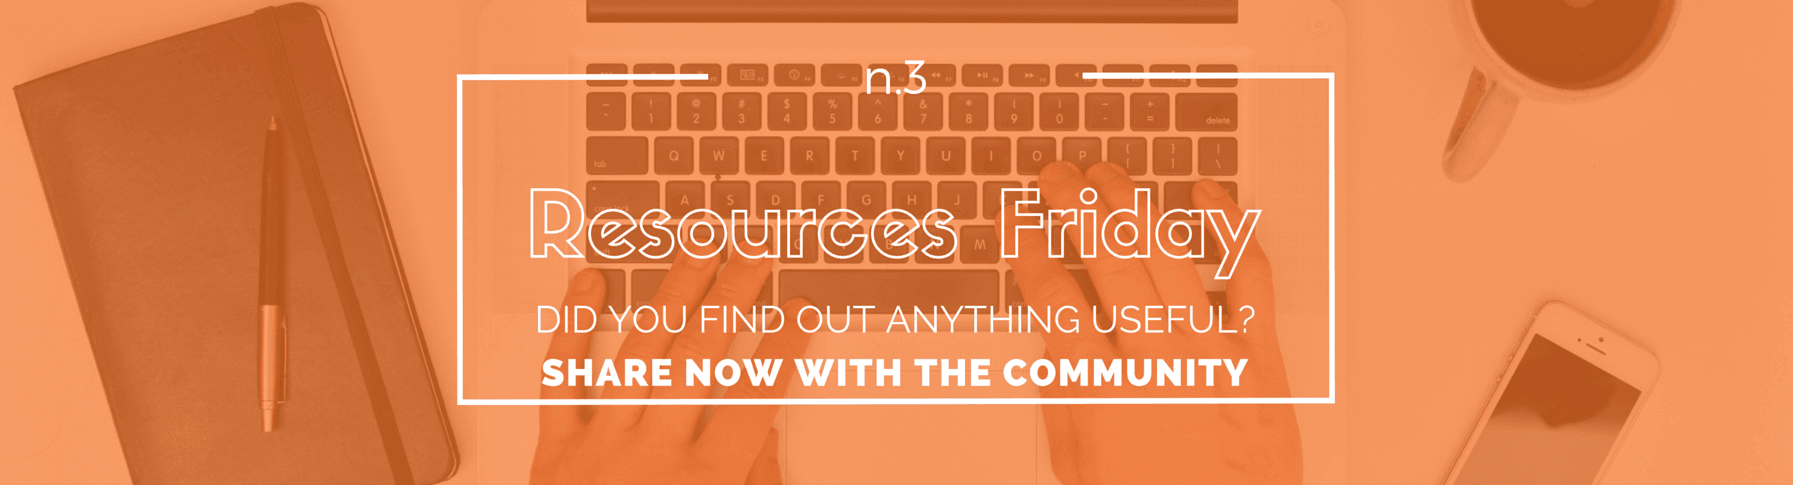 Resources Friday n.3